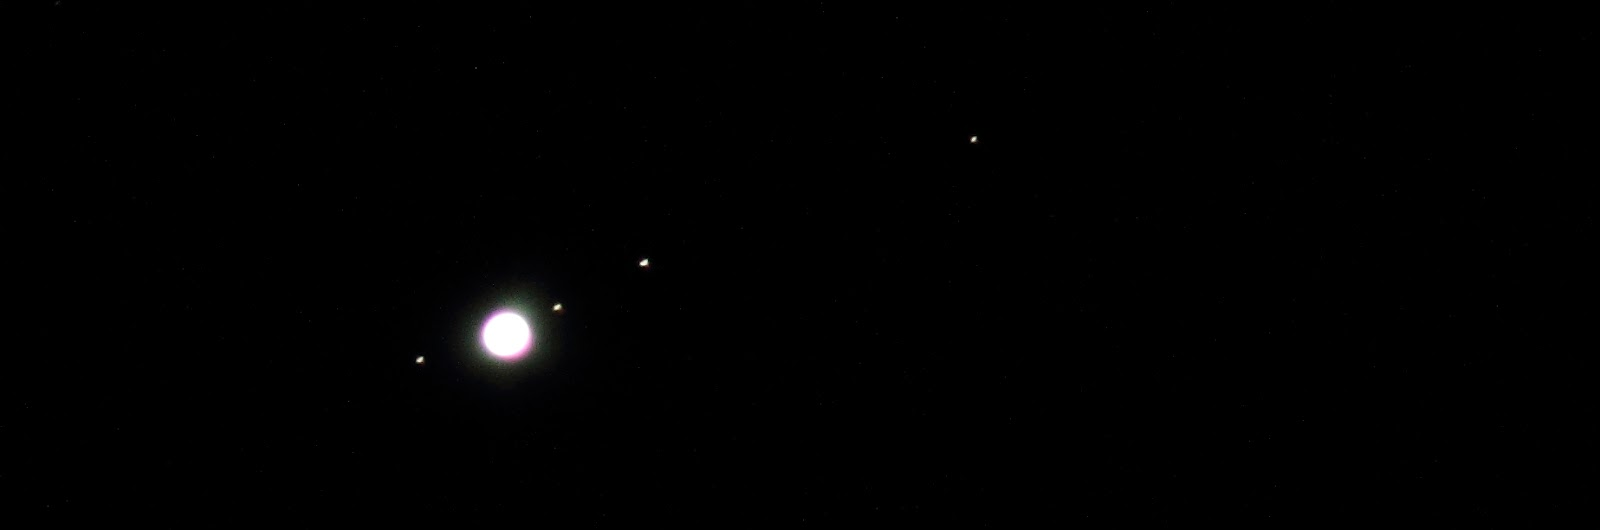 jupiter and its moons with white back - photo #47